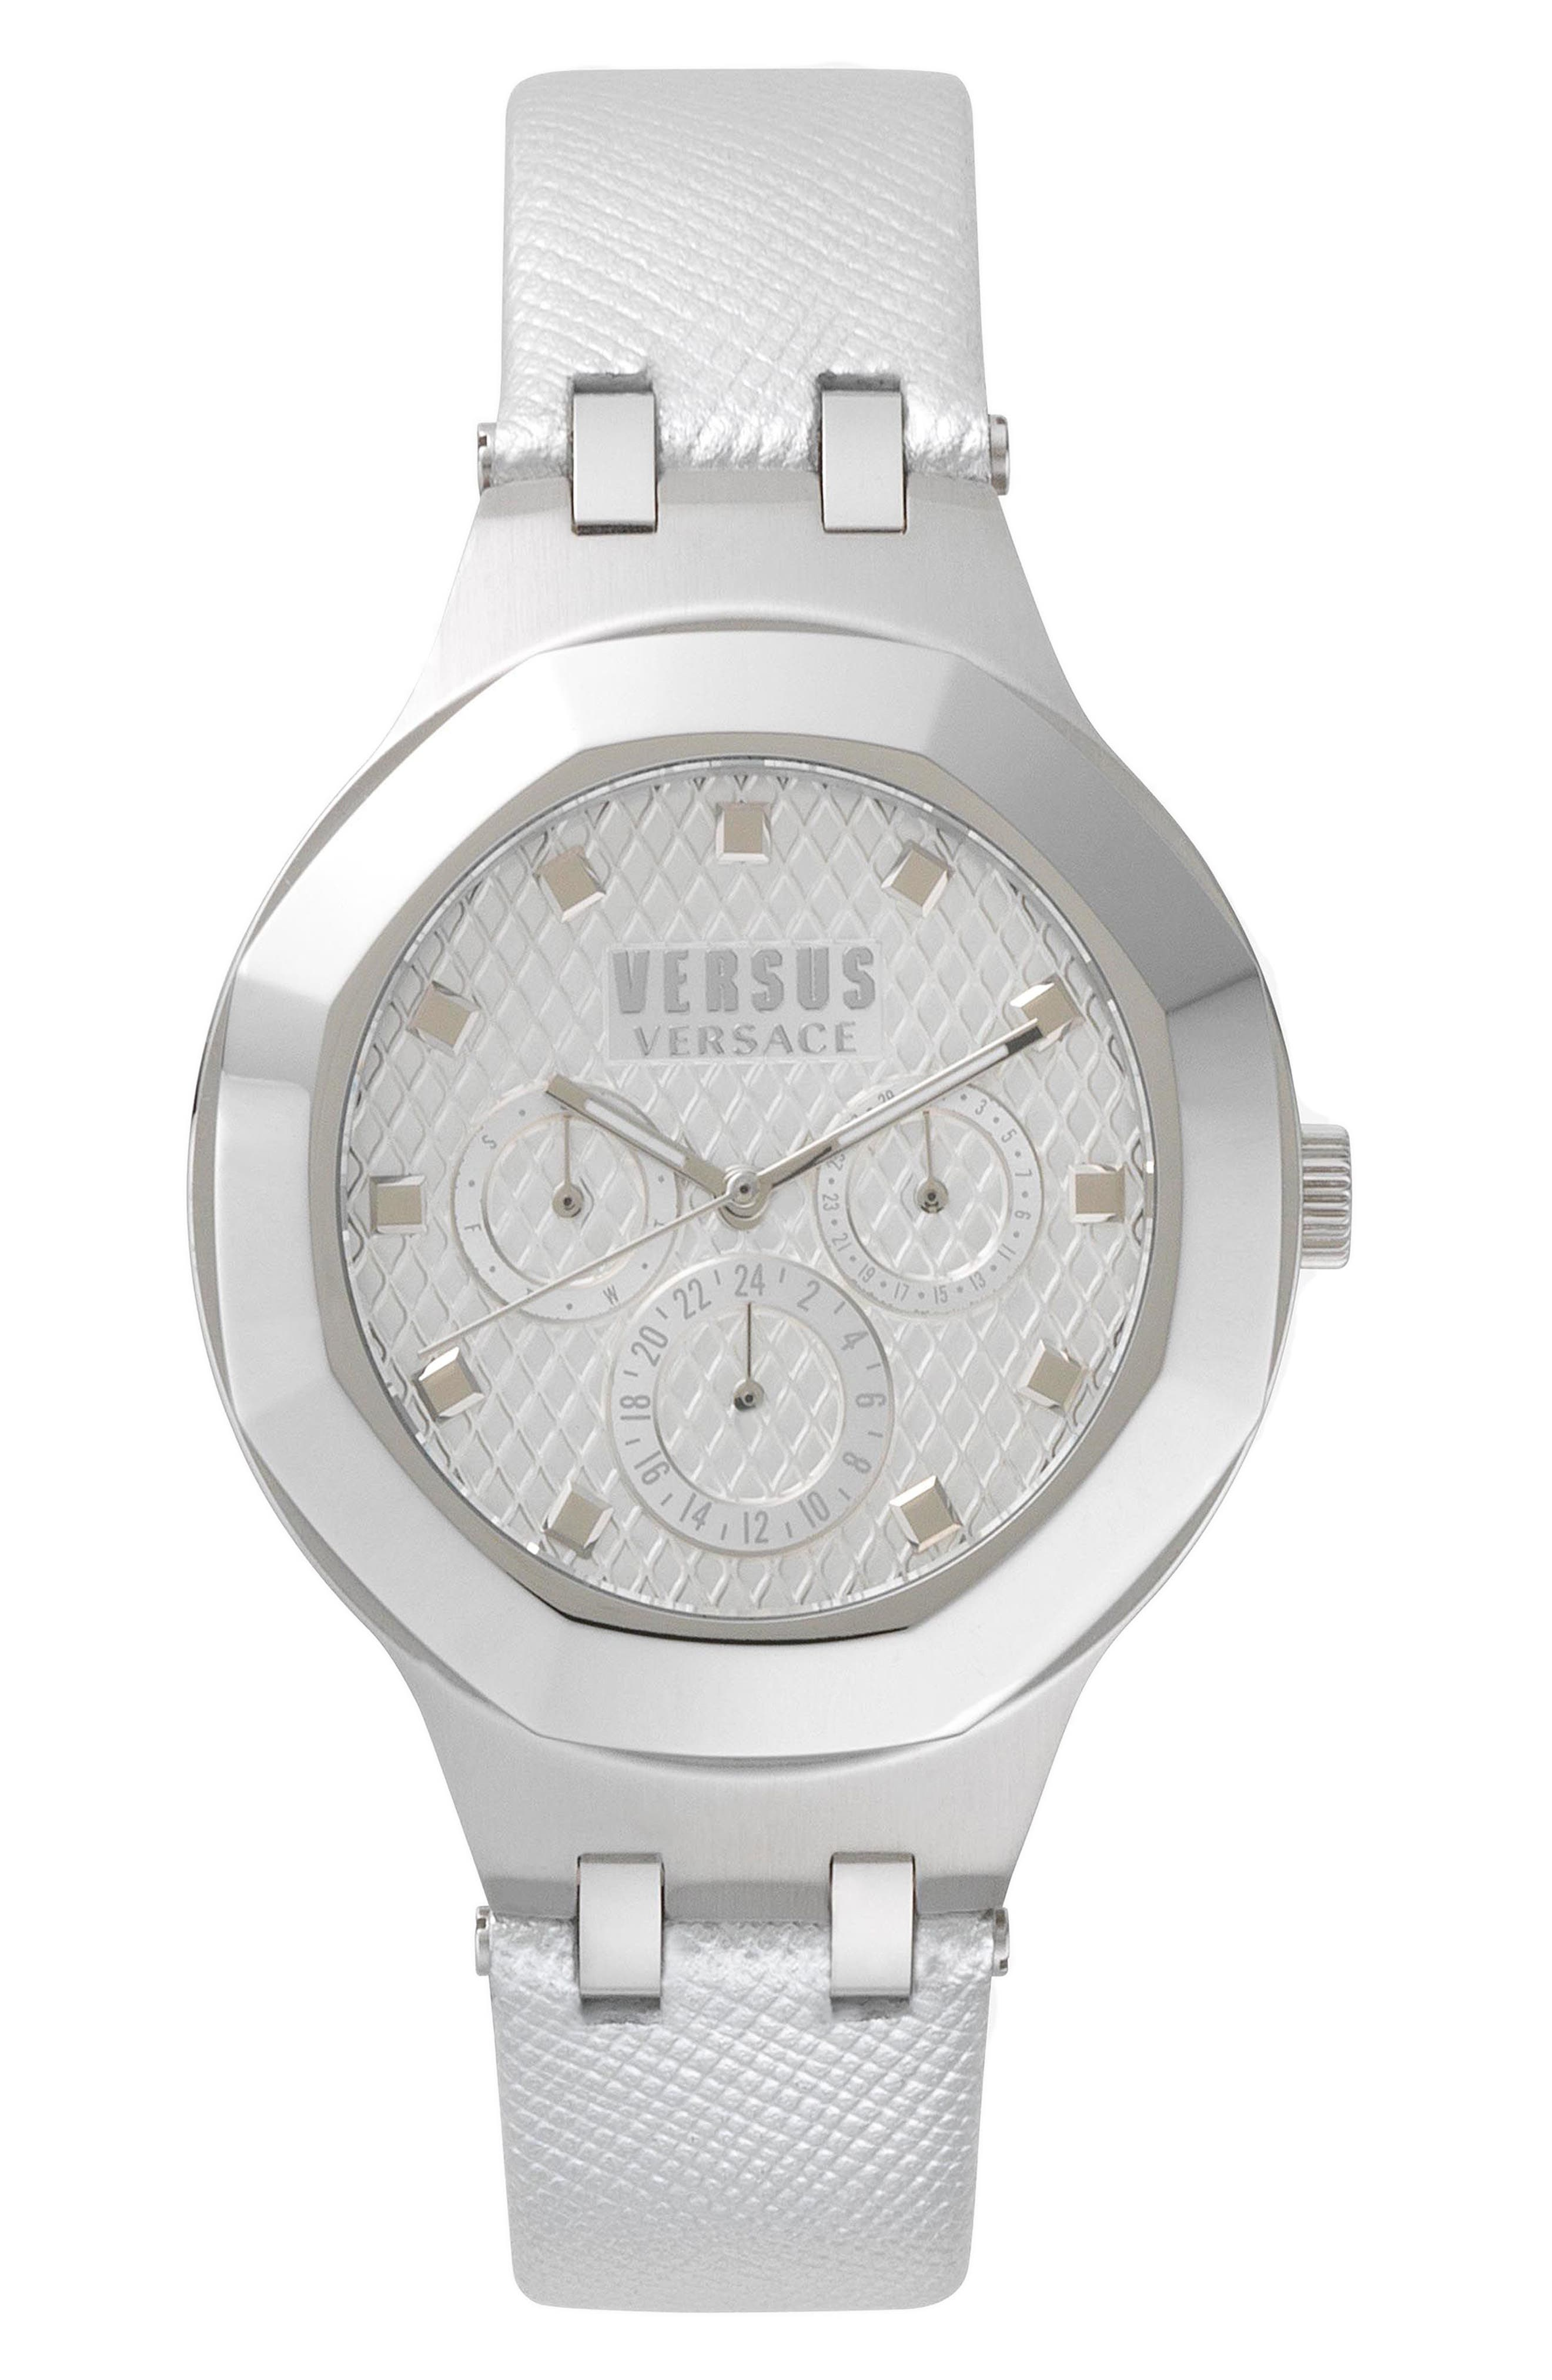 VERSUS by Versace Laguna City Multifunction Leather Strap Watch, 40mm,                         Main,                         color, White/ Silver